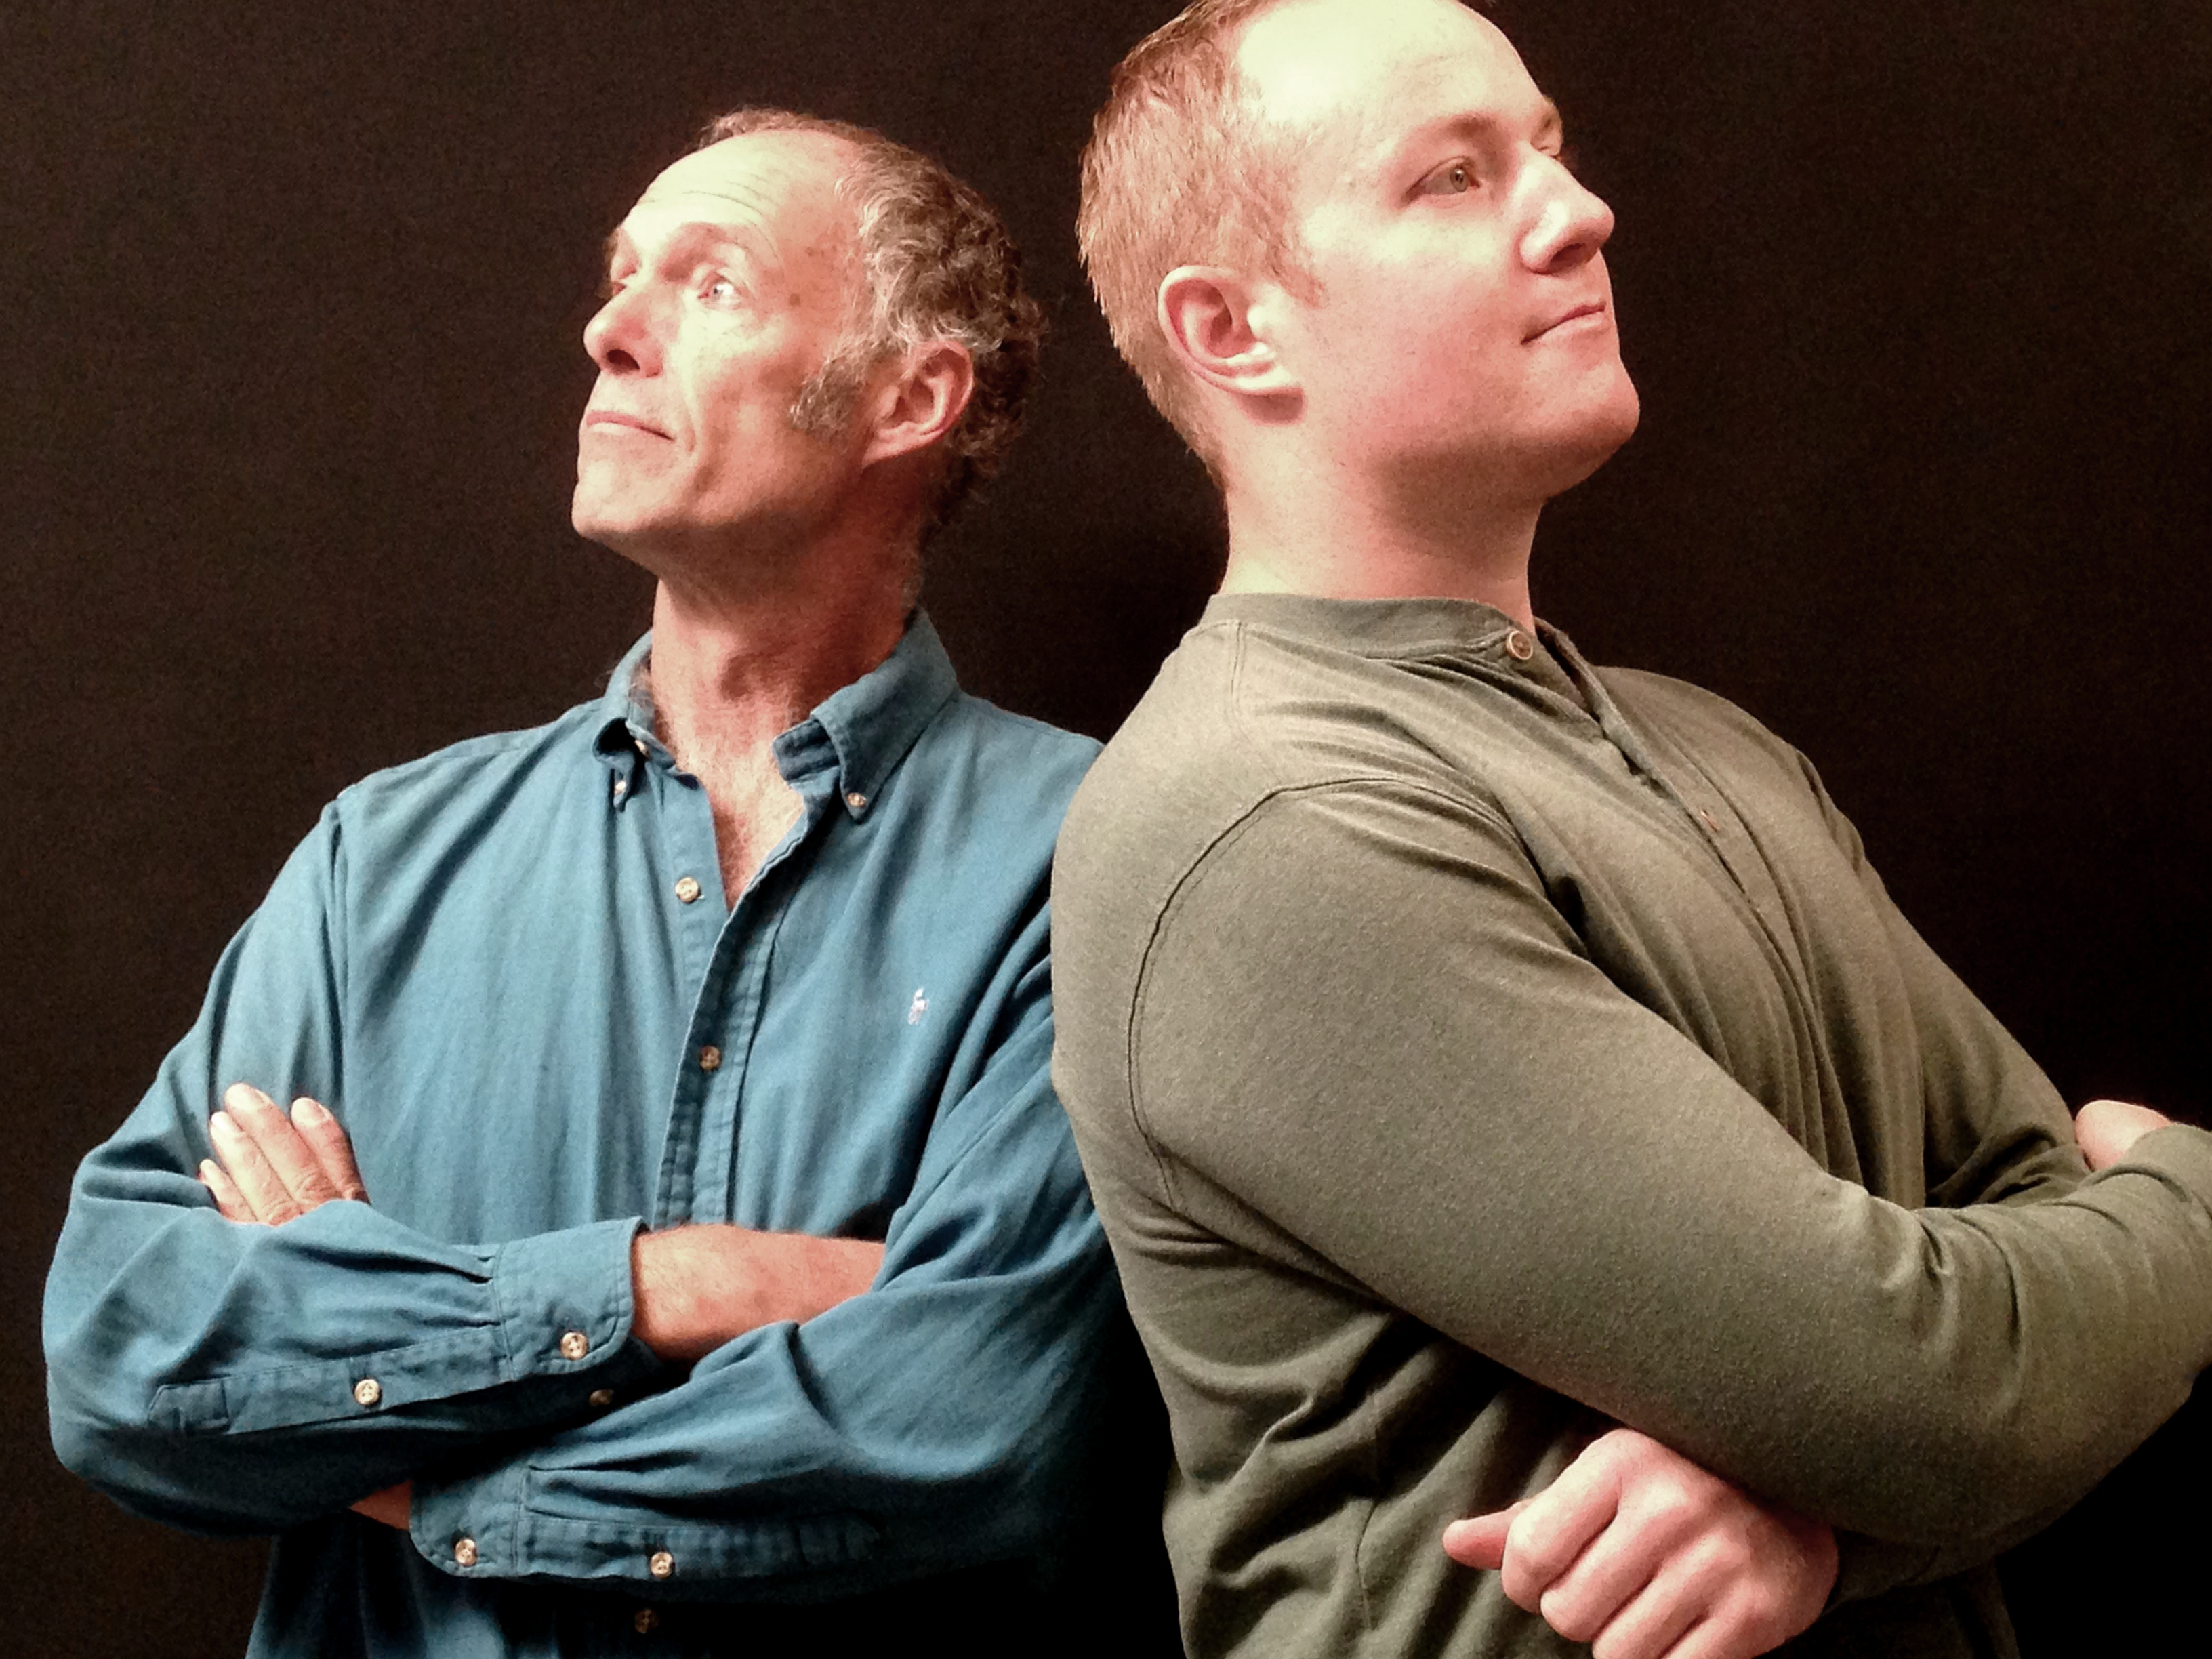 Tim Holmes and Garret Garrels combine art, storytelling and comedy.